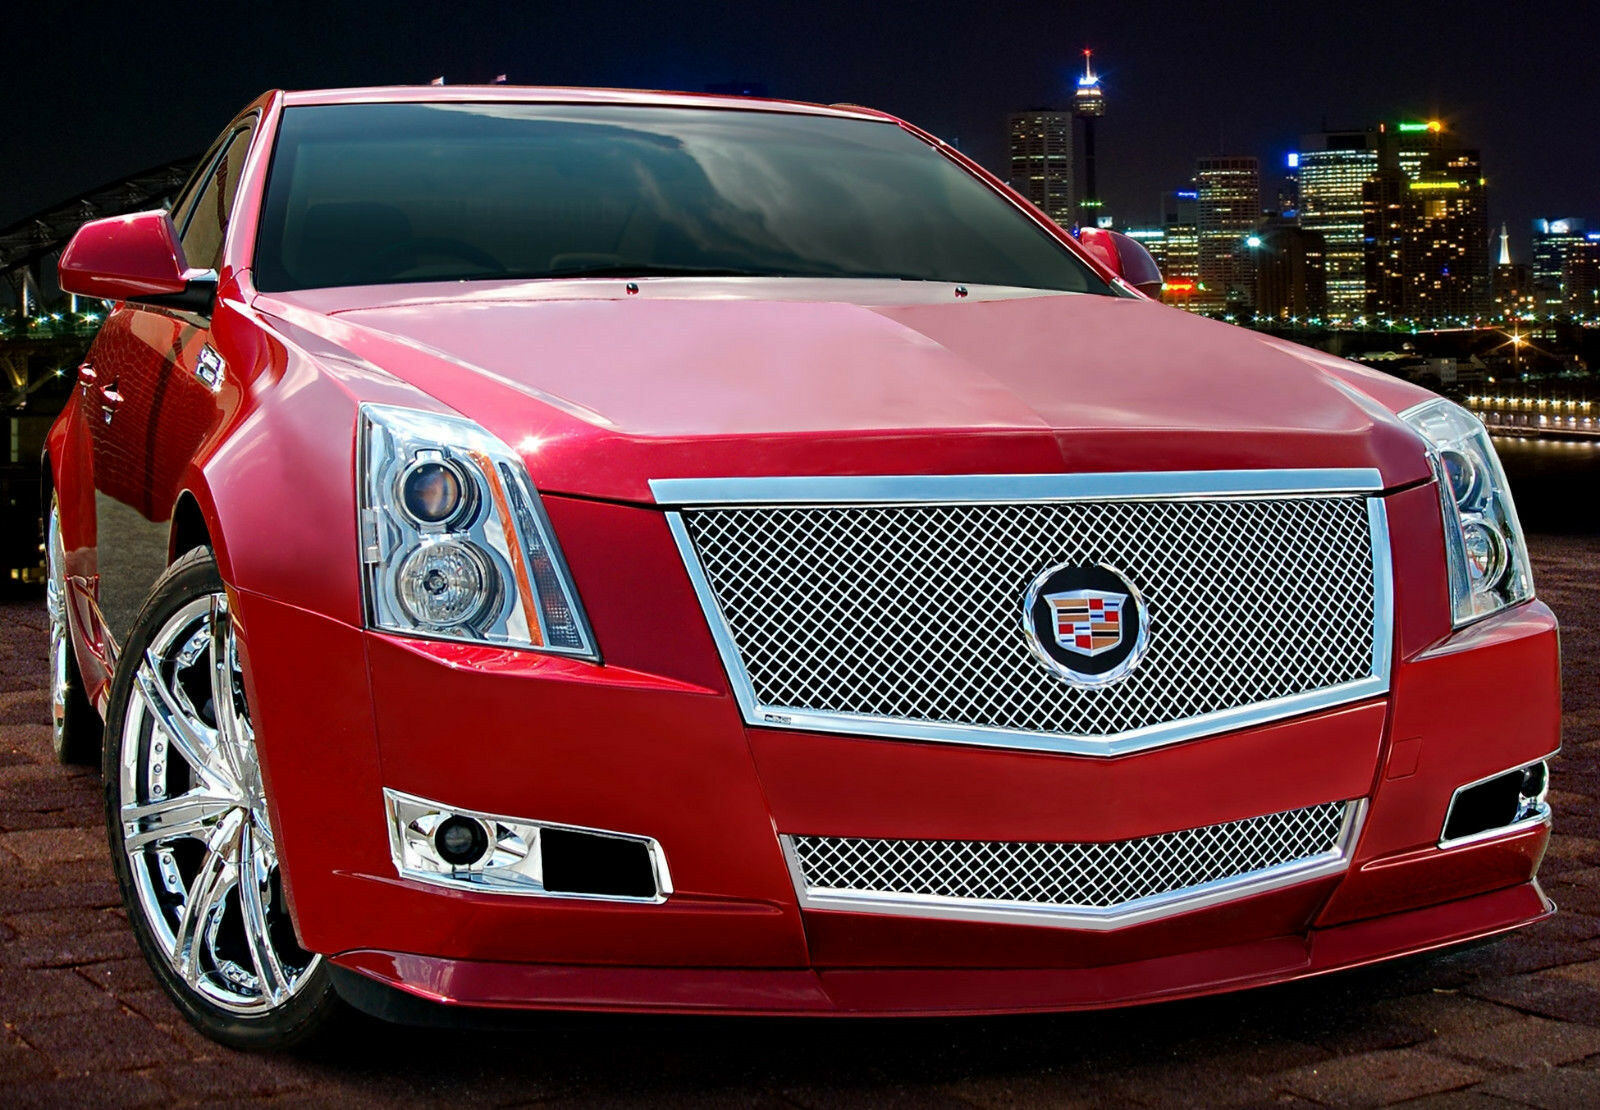 Cts V Wagon For Sale >> 2PC HEAVY MESH GRILLE GRILL E&G FITS 2008 2009 2010 2011 2012 2013 CADILLAC CTS   eBay